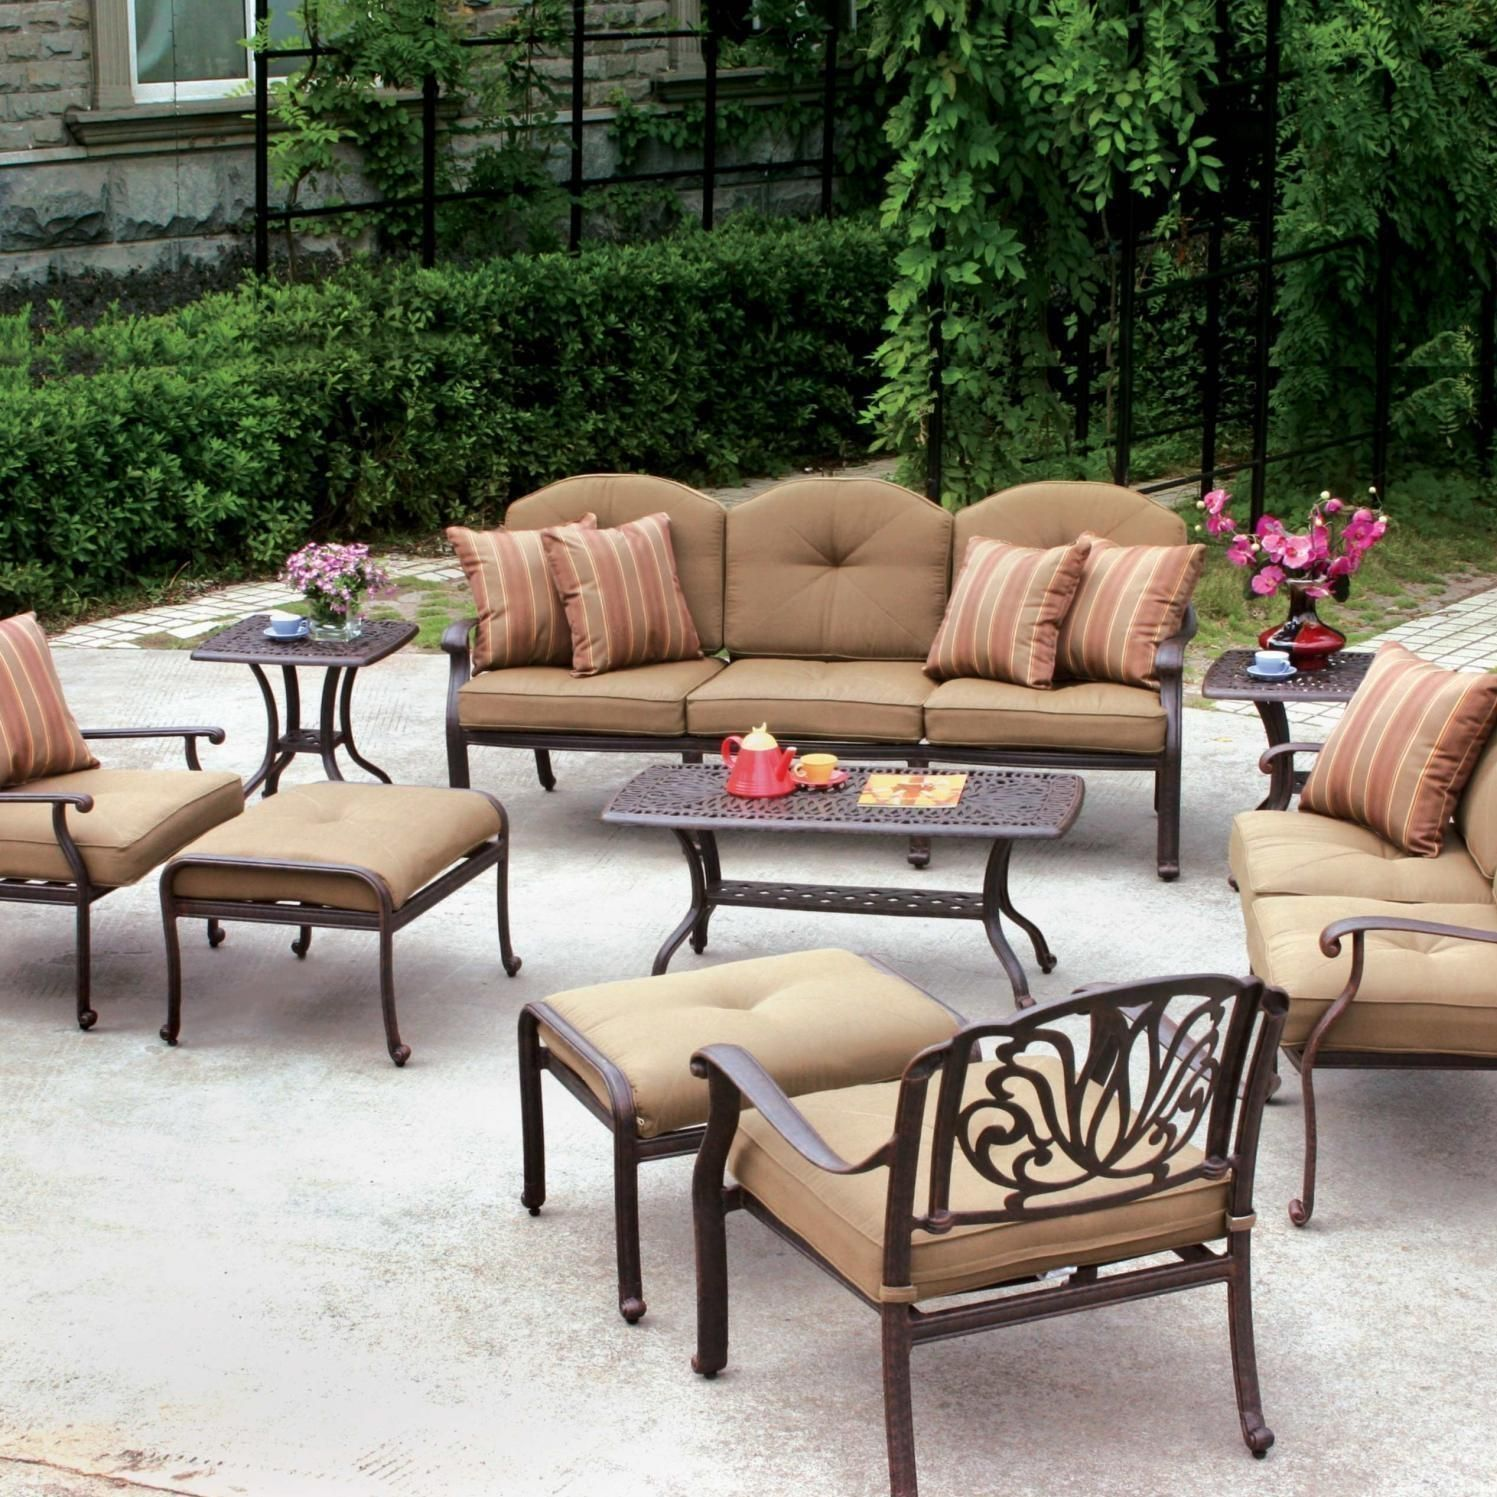 Patio Conversation Sets Clearance   Furniture Ideas   Pinterest     Patio Conversation Sets Clearance